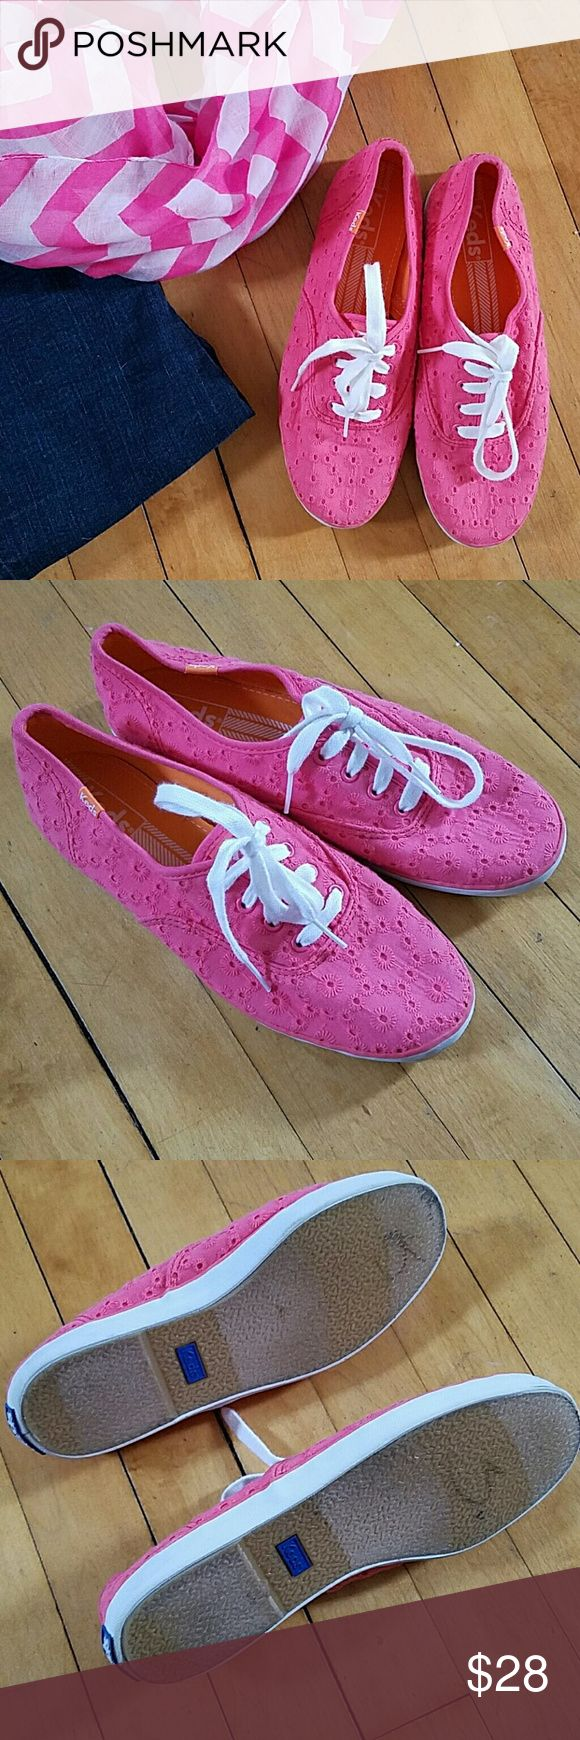 Keds Champion Pink Eyelet Like new! Keds Champion Pink Eyelet shoes. Excellent condition, one tiny mark on toe. See photo. Size 7, run a bit large. Keds Shoes